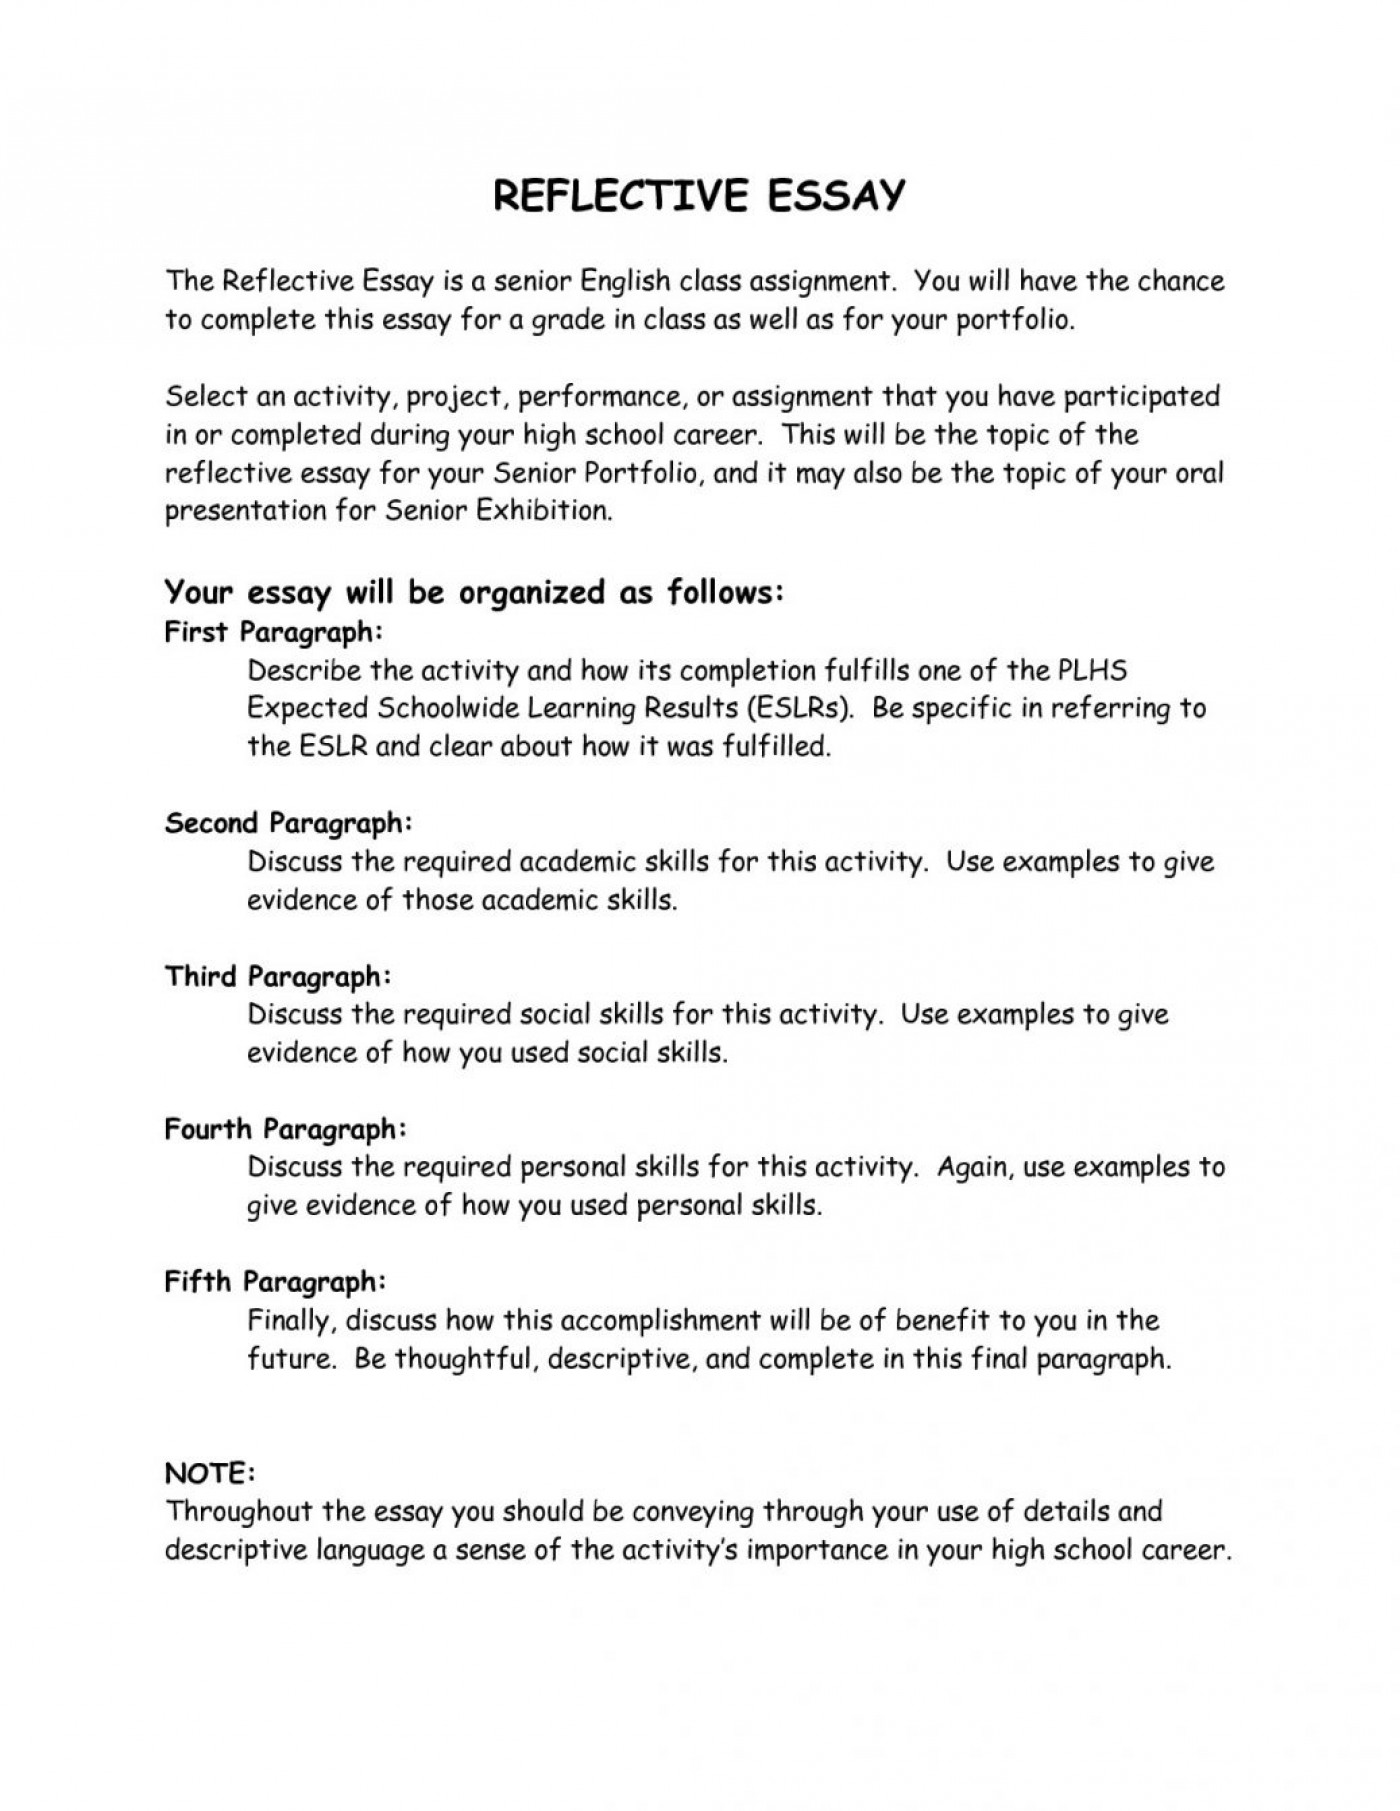 022 Paragraph Development Examples Essay Template Staggering Image Ideas Developing Thesis High School Researchr Writing Service Awesome 1038x1343 Cool Topics To Do On Impressive A Research Paper Interesting For Medical Of In Computer Science Economic 1400